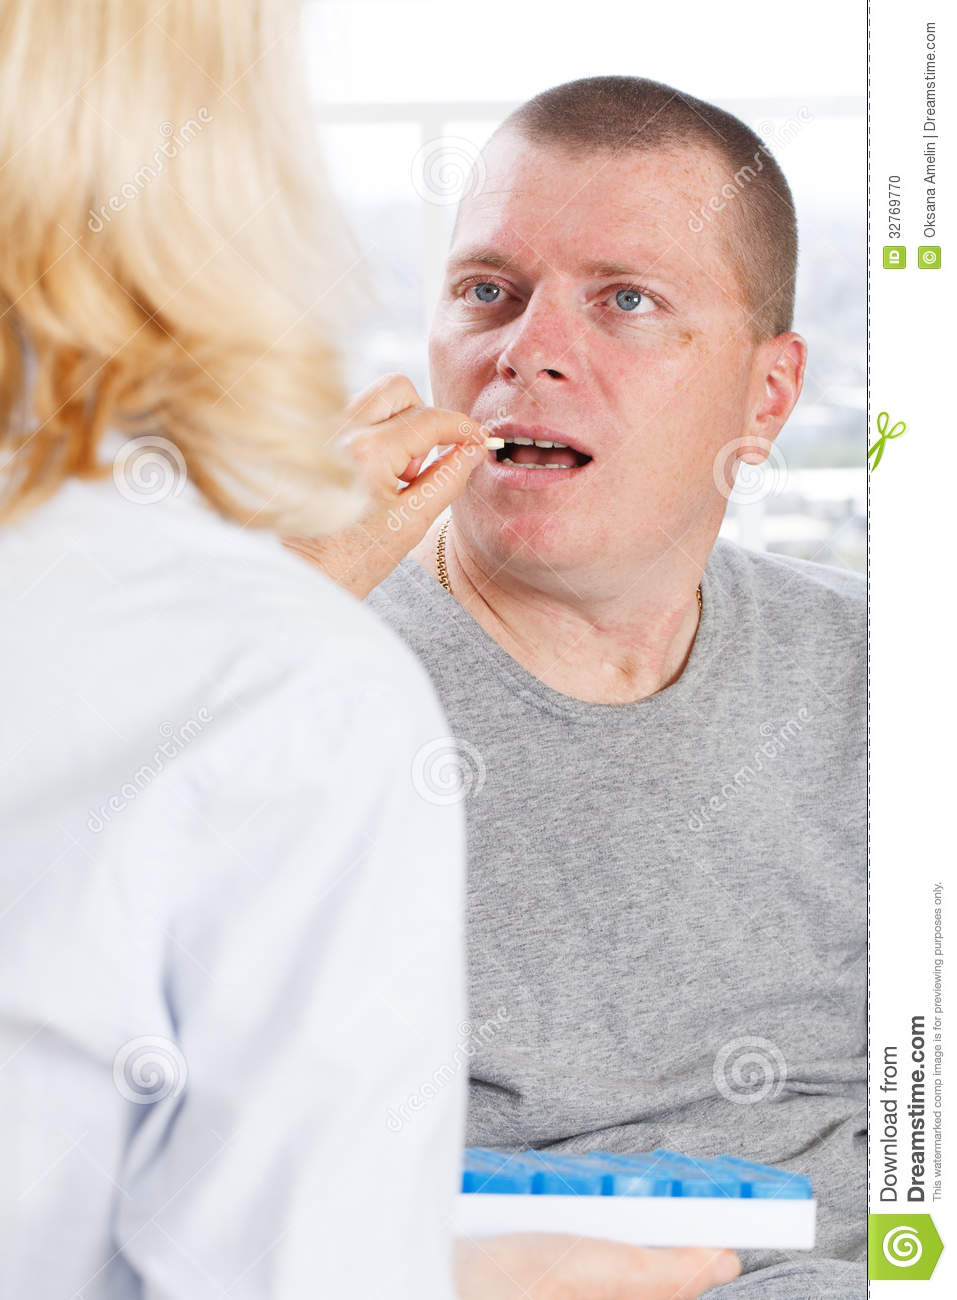 Man given hand job by nurse yeah ♠♠♠